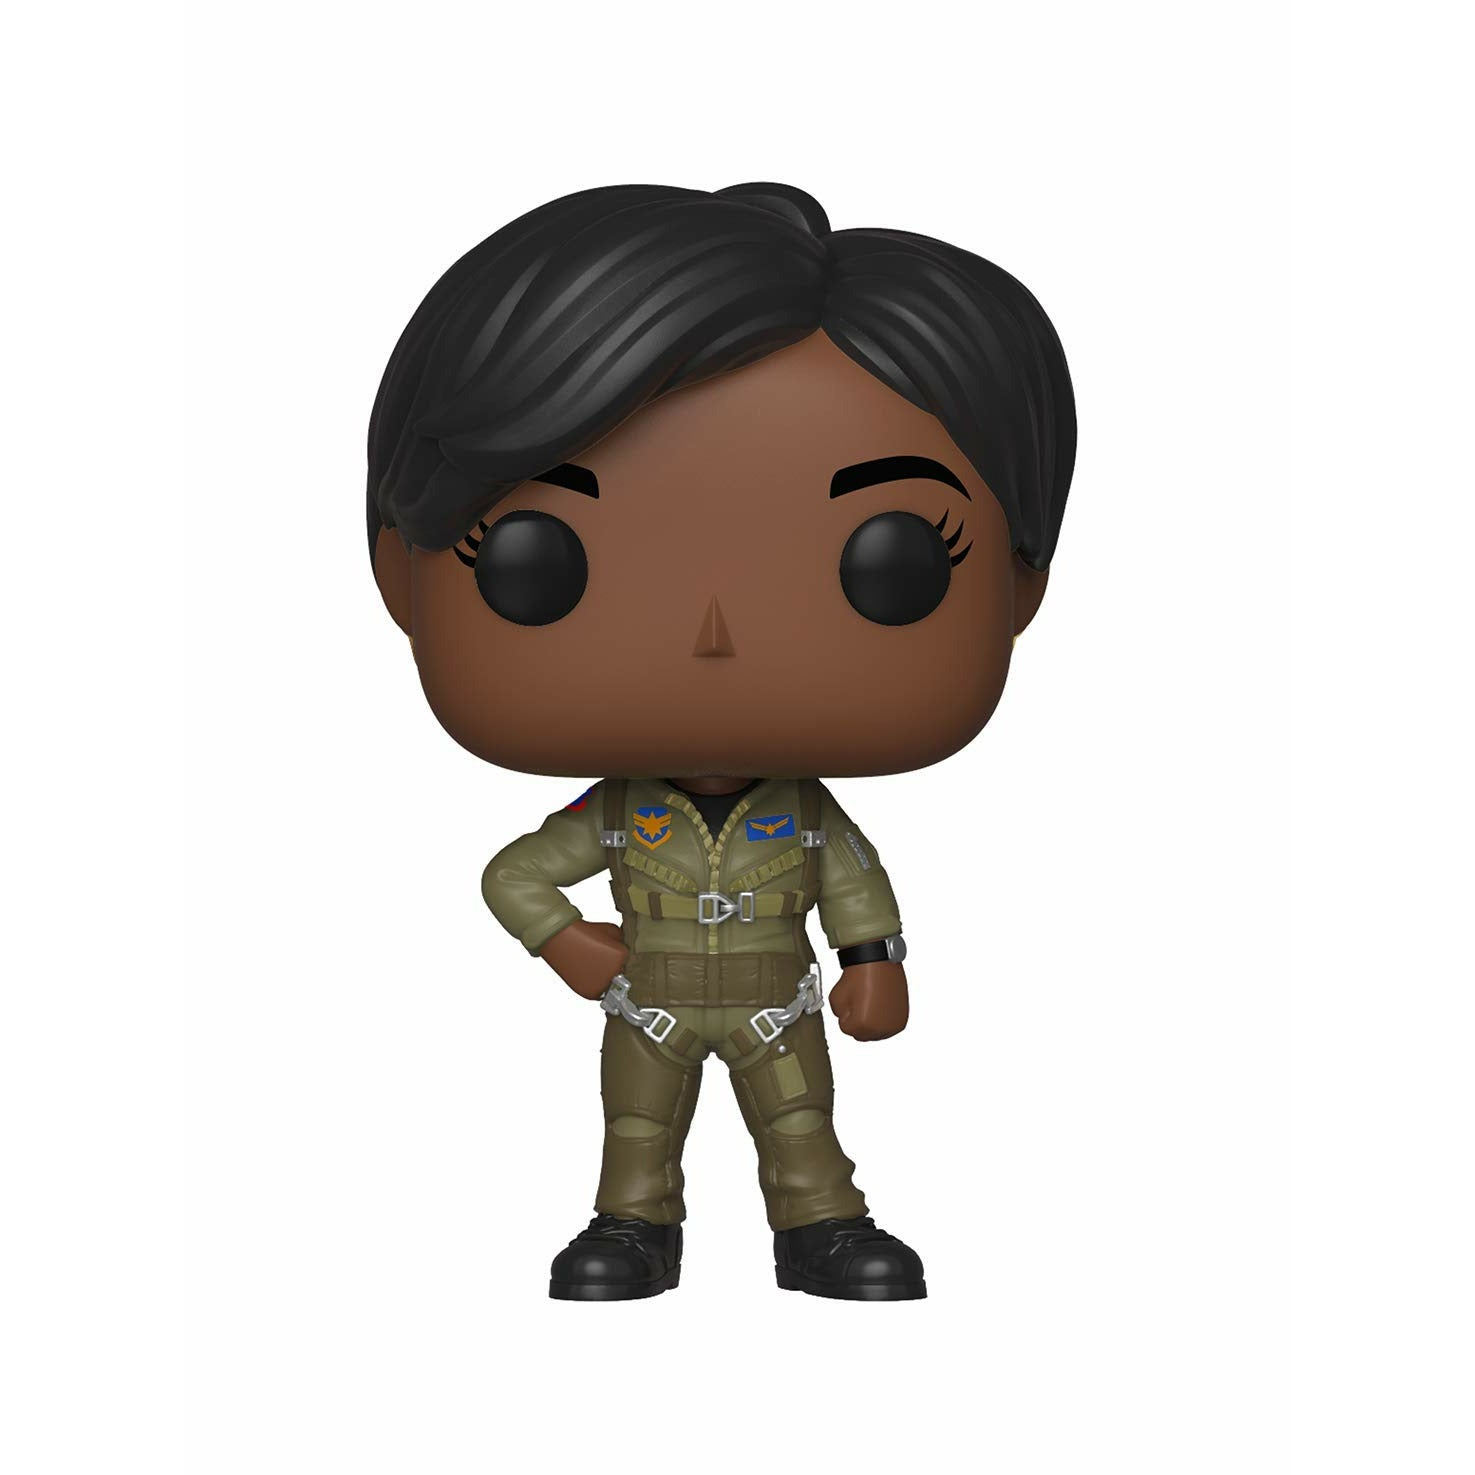 Captain Marvel Maria Rambeau Bobblehead Pop! Vinyl Figure